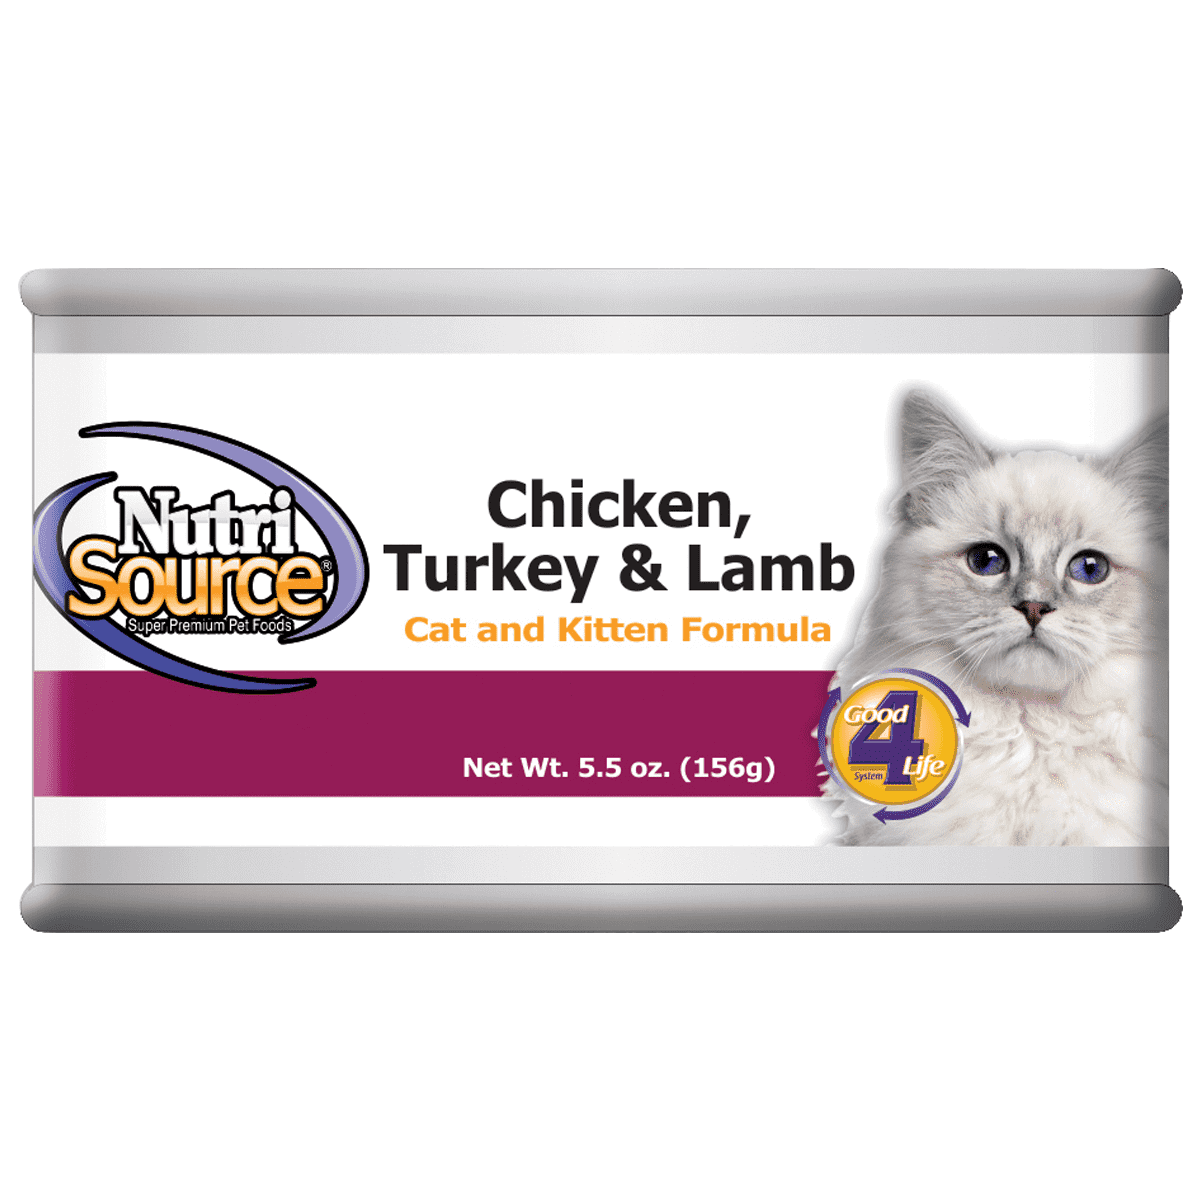 NutriSource Cat and Kitten Chicken Turkey and Lamb Canned Cat Food, 5-oz